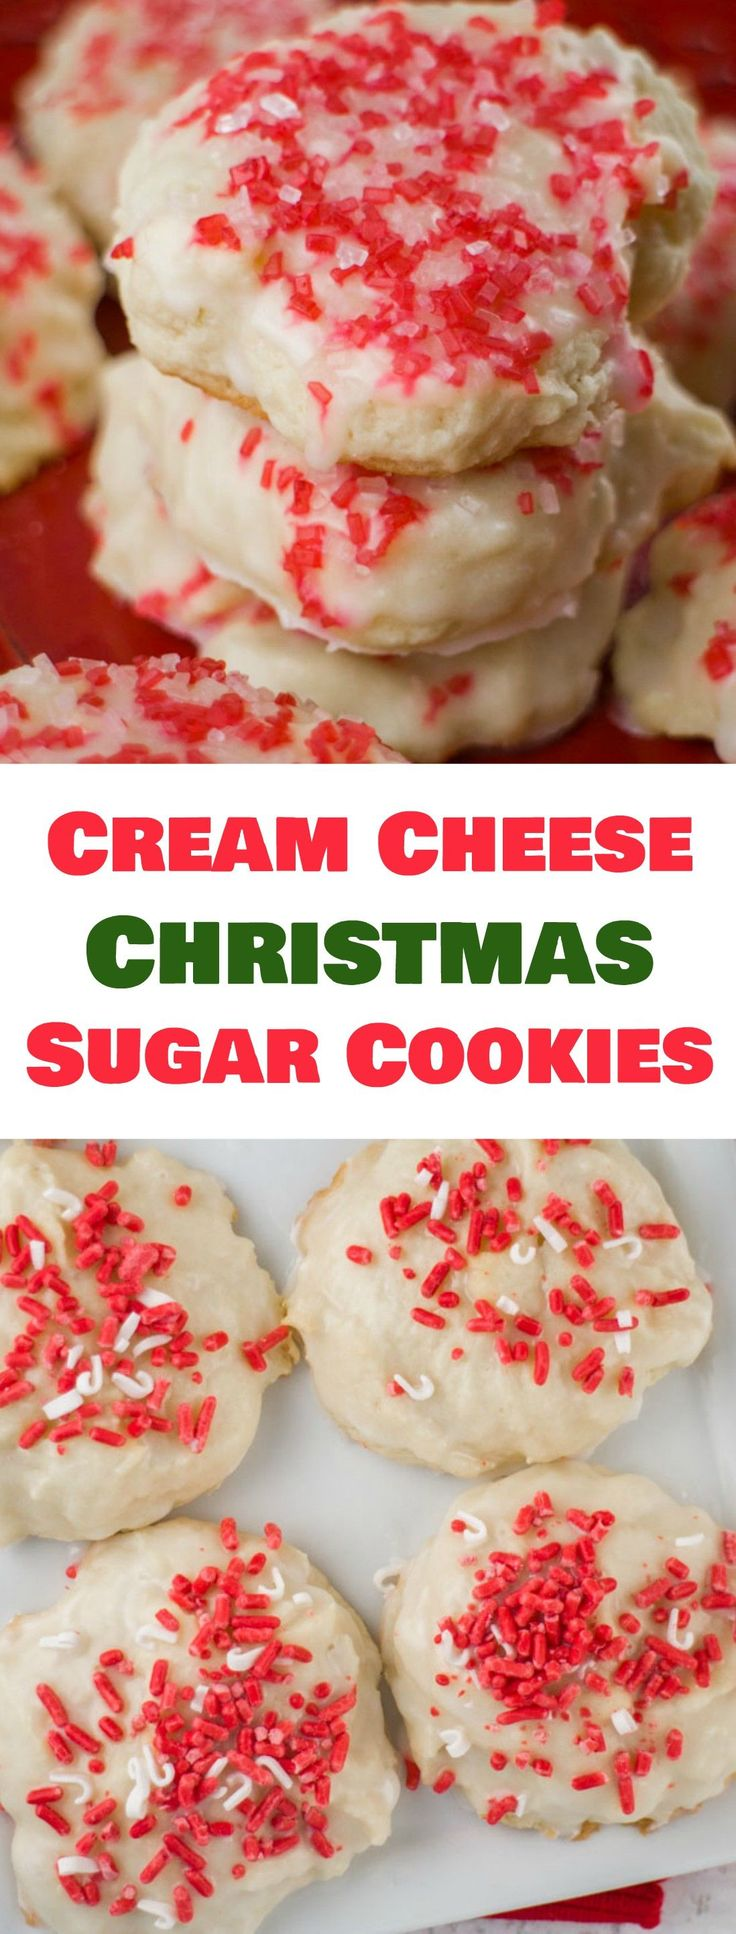 These Christmas Sugar Cookies are so soft because they are made with cream cheese! Dip each cookie into vanilla glaze and then top with festive sprinkles! Recipe makes 48 cookies.